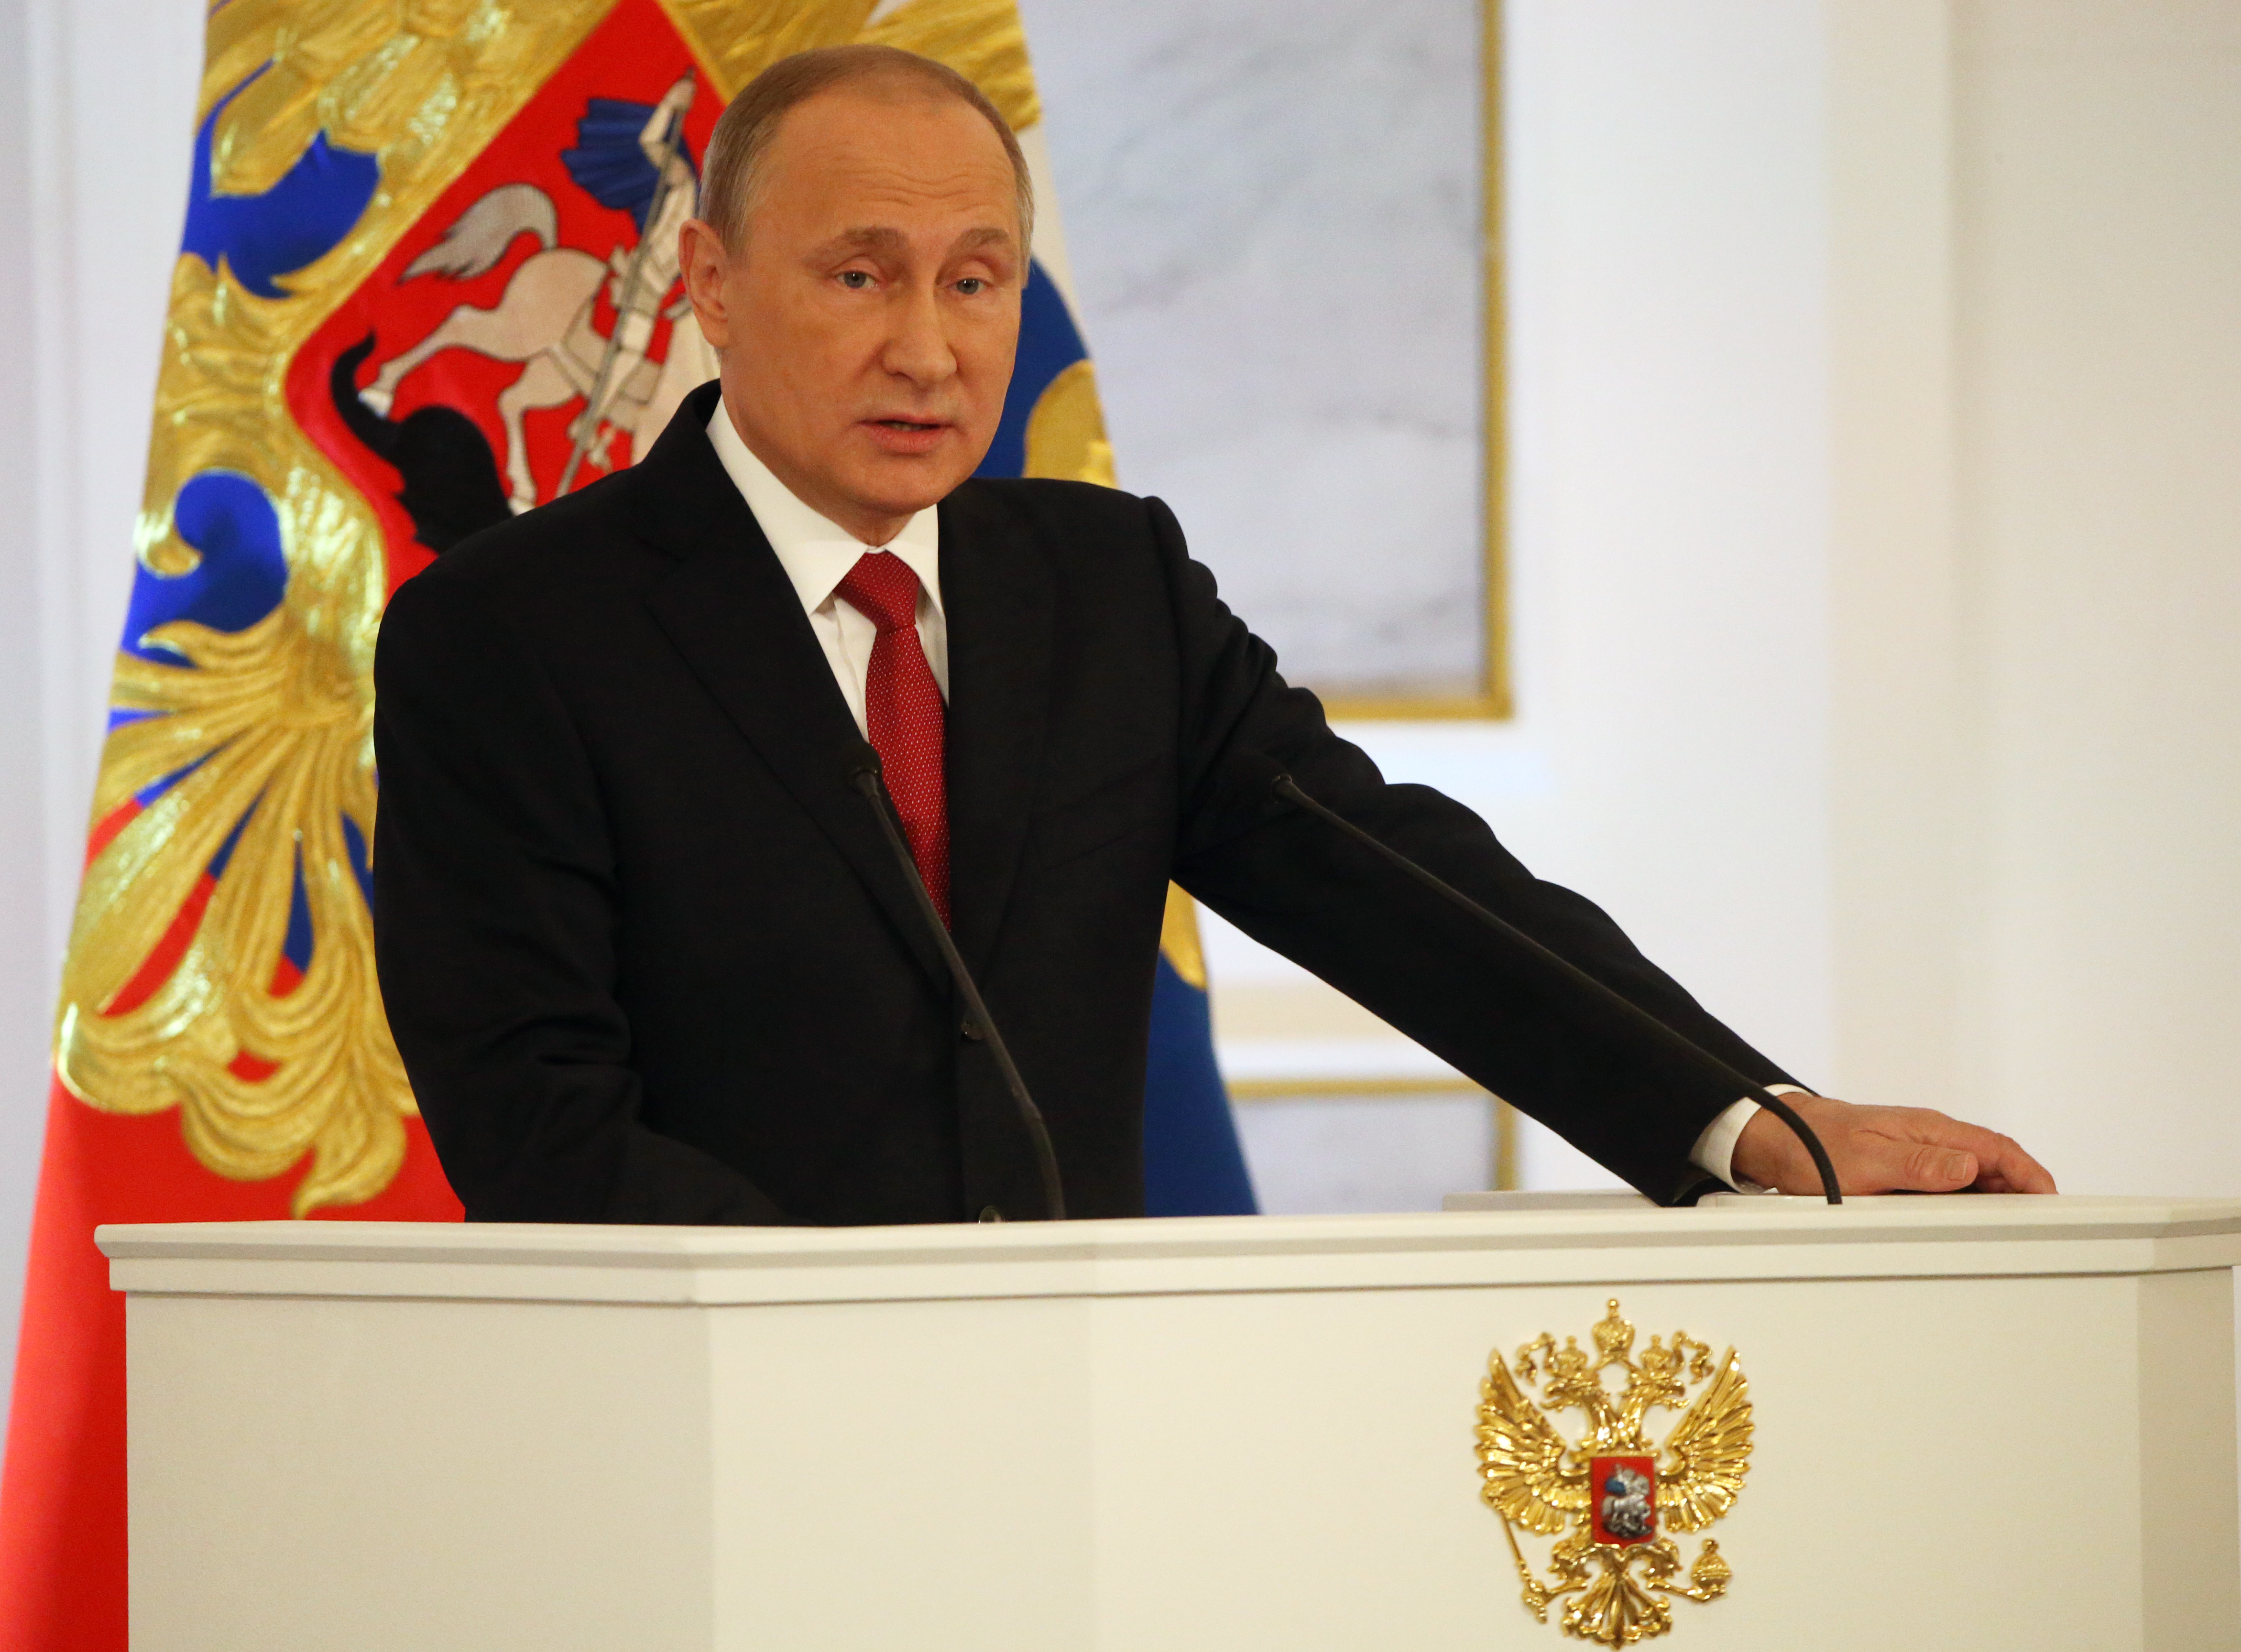 Russian President Vladimir Putin delivers his annual speech to the Federal Assembly at Grand Kremlin Palace on Dec. 1 in Moscow, Russia.